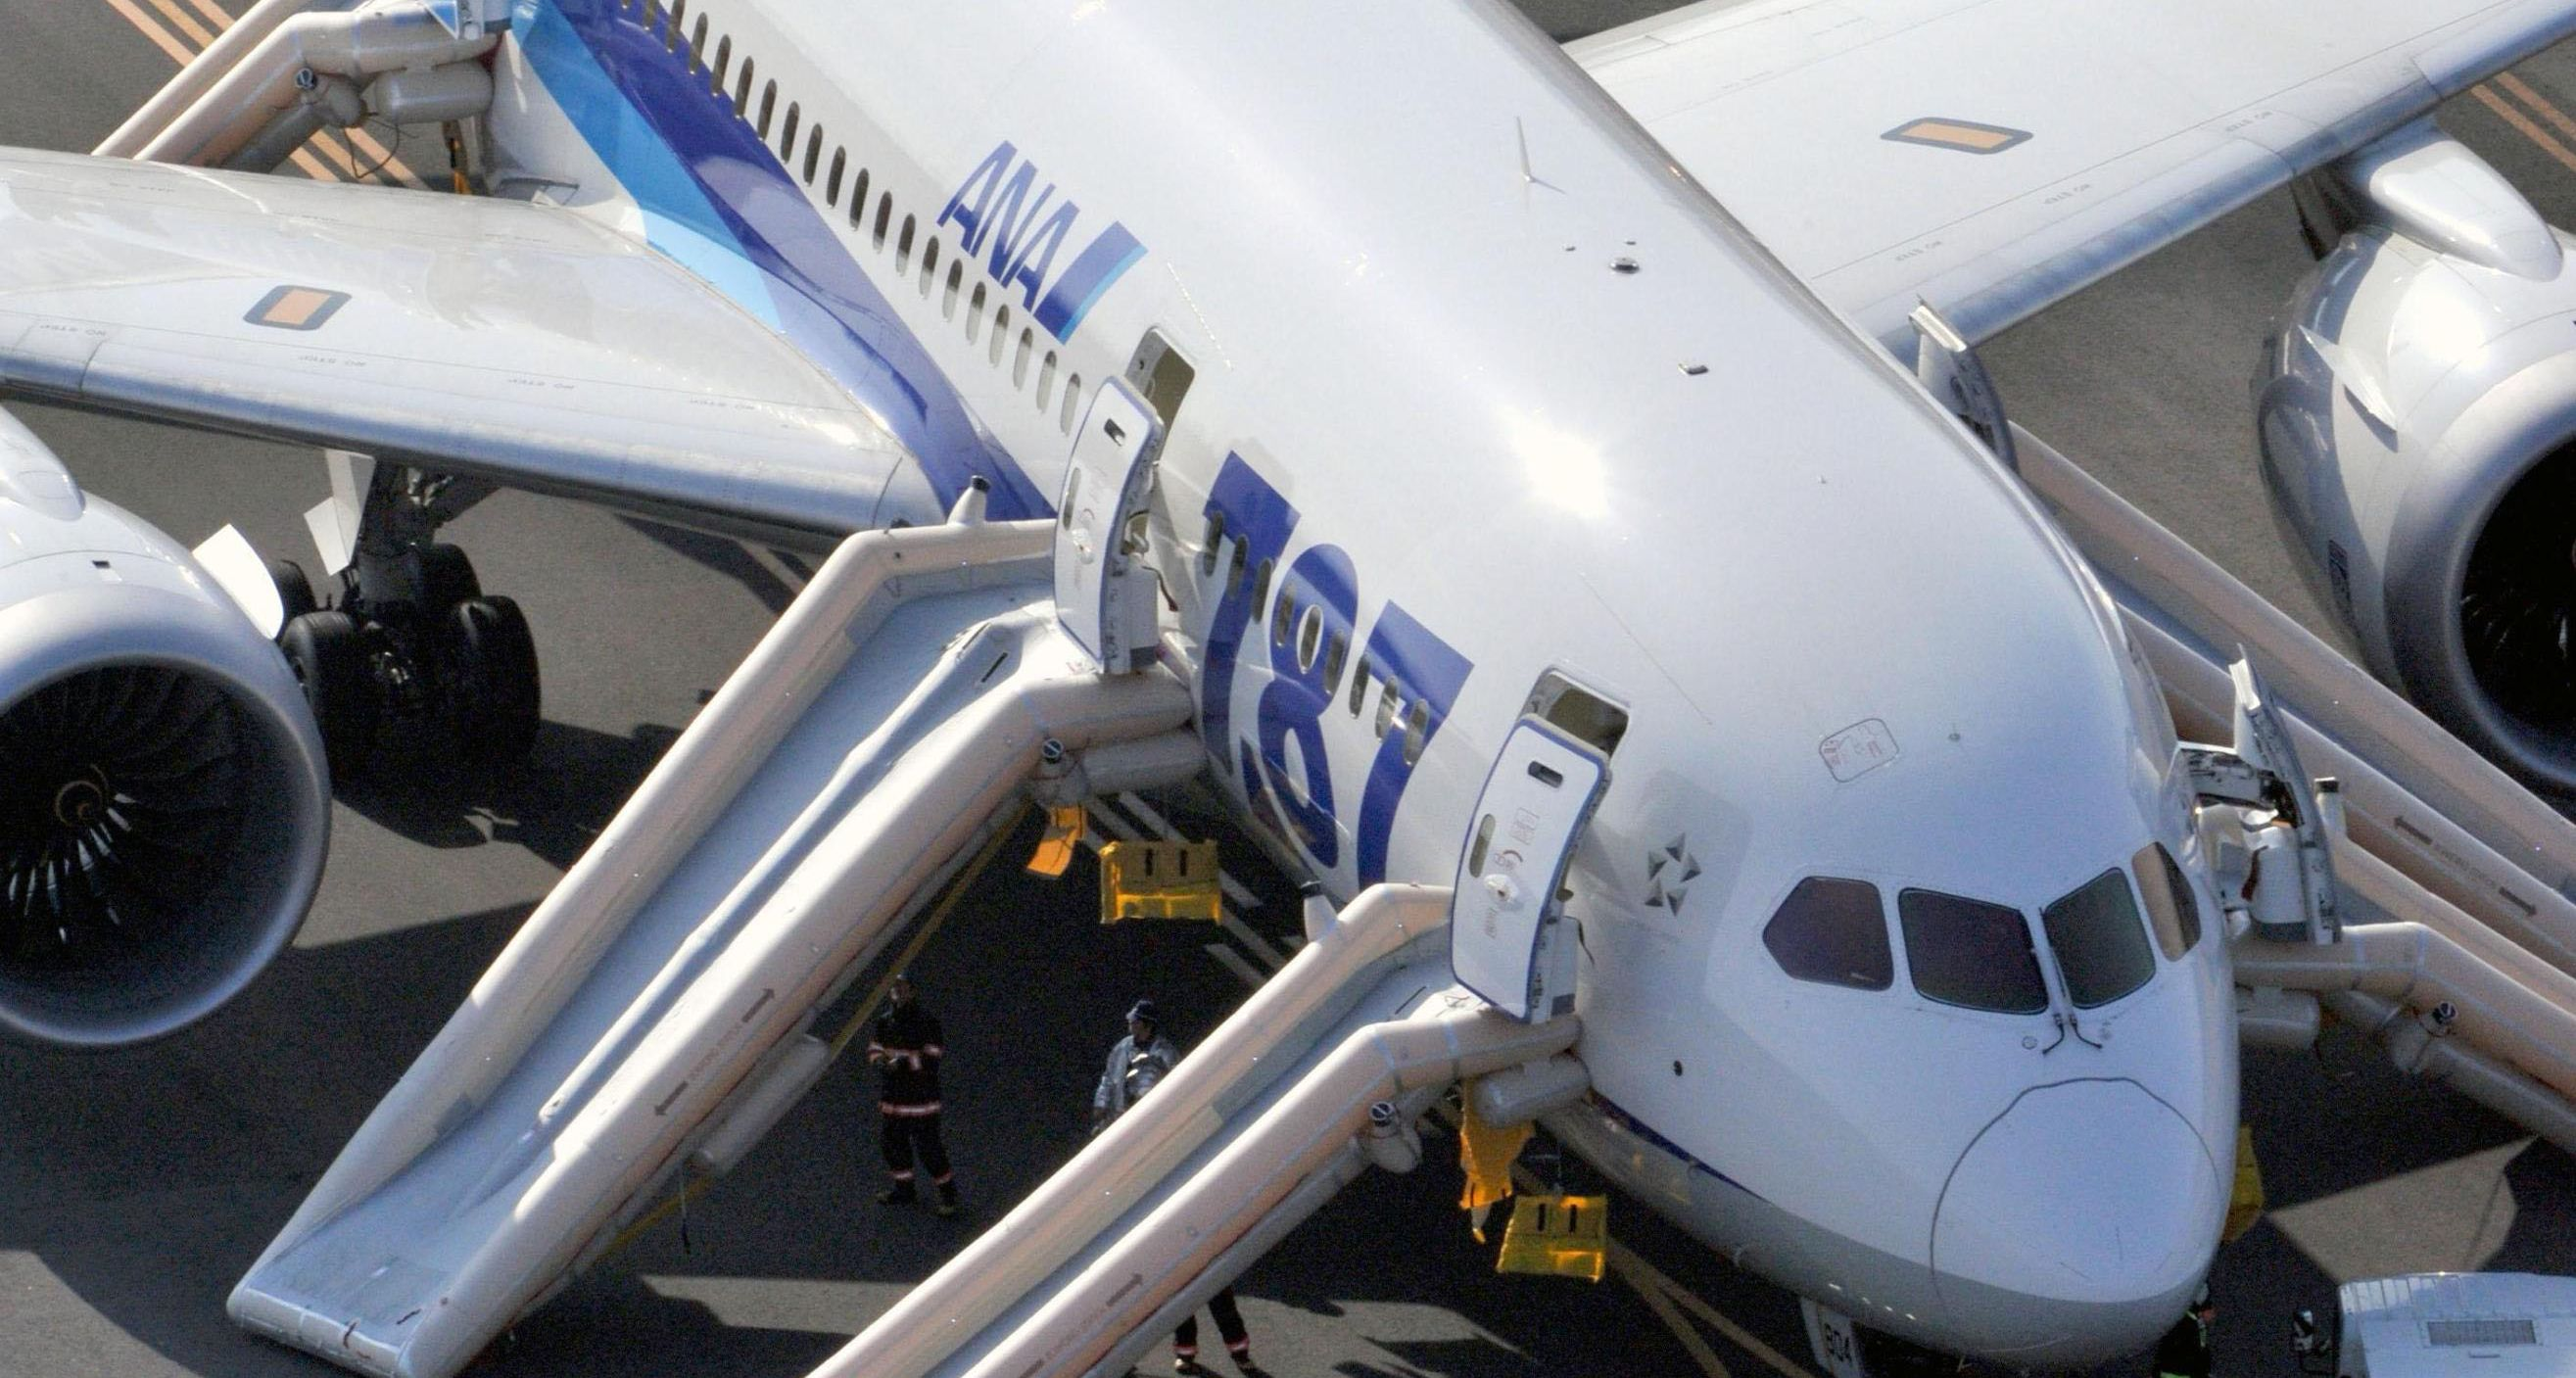 ANA, JAL ground all 787s after emergency landing